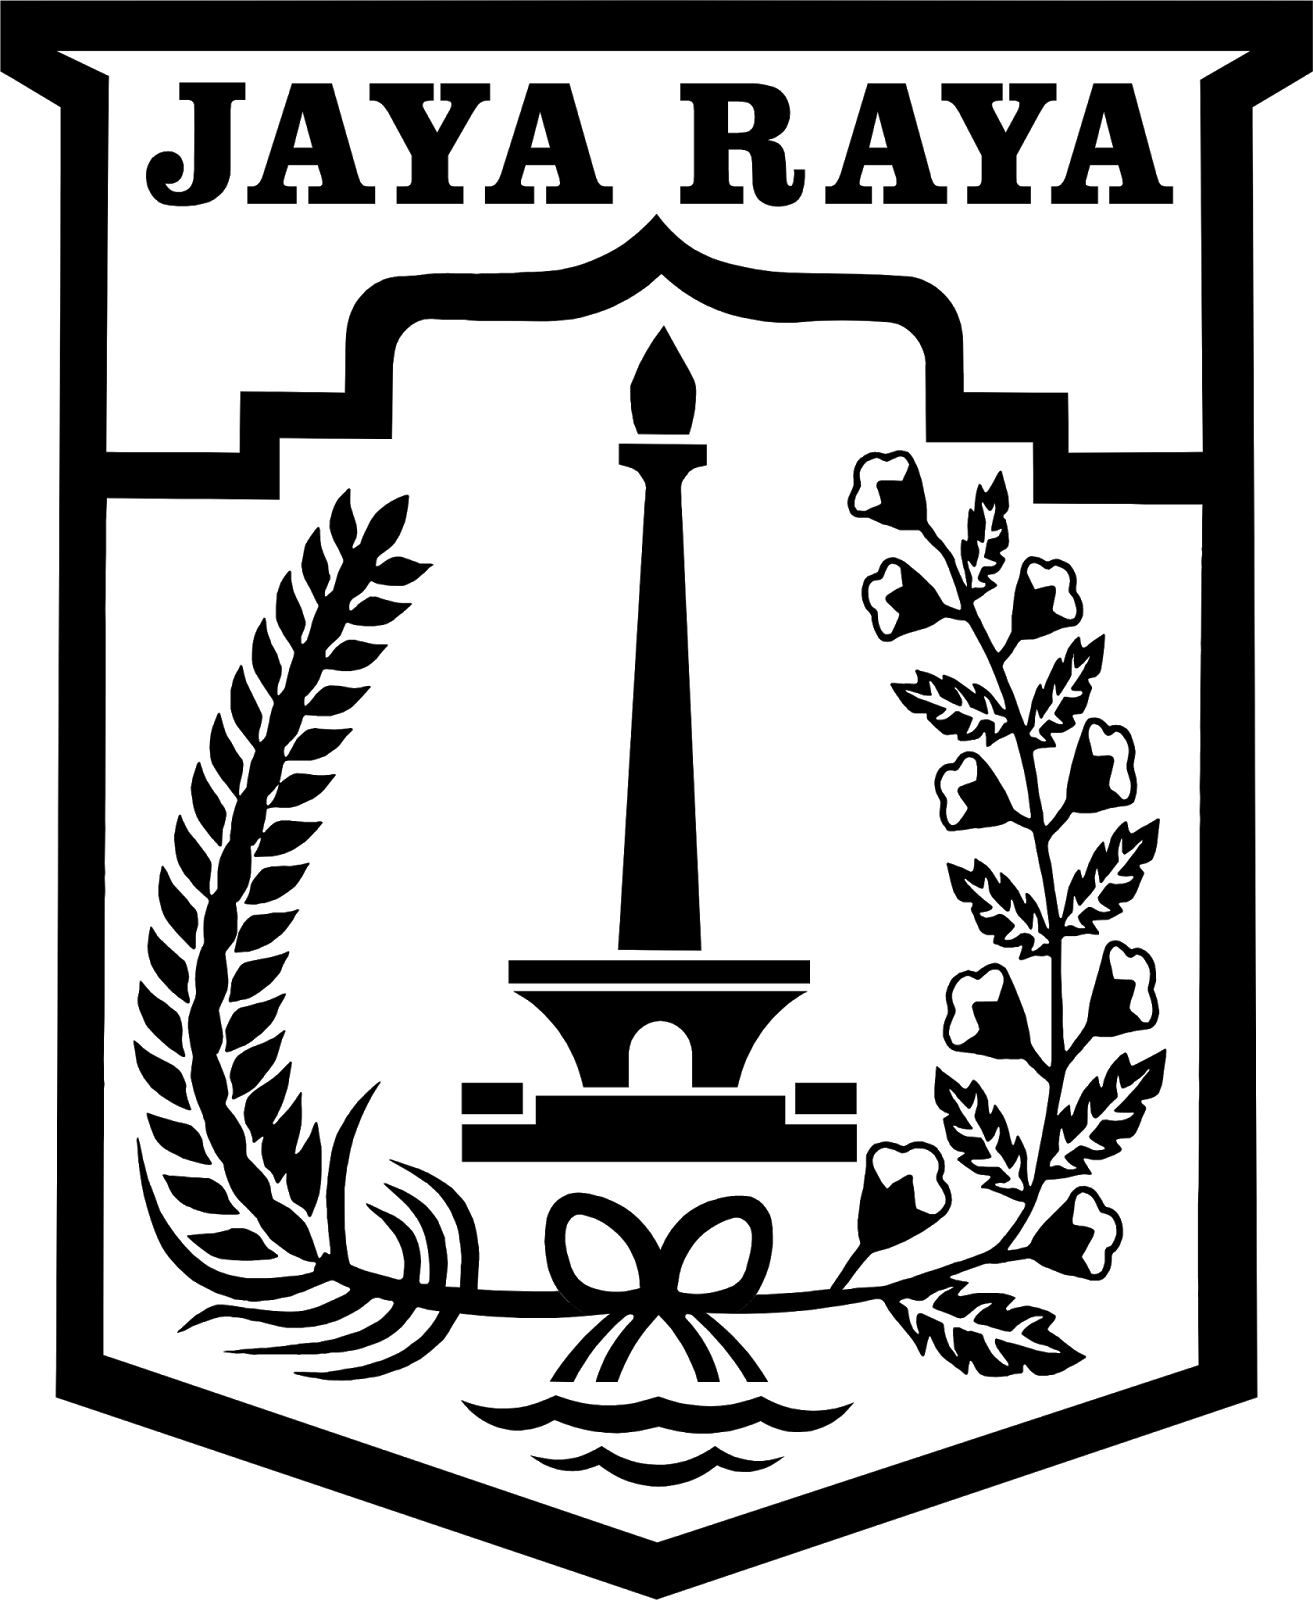 Jaya Raya Png : Jakarta, Official, Broadcast, Youtube, Download, Vector, In.eps, Format.